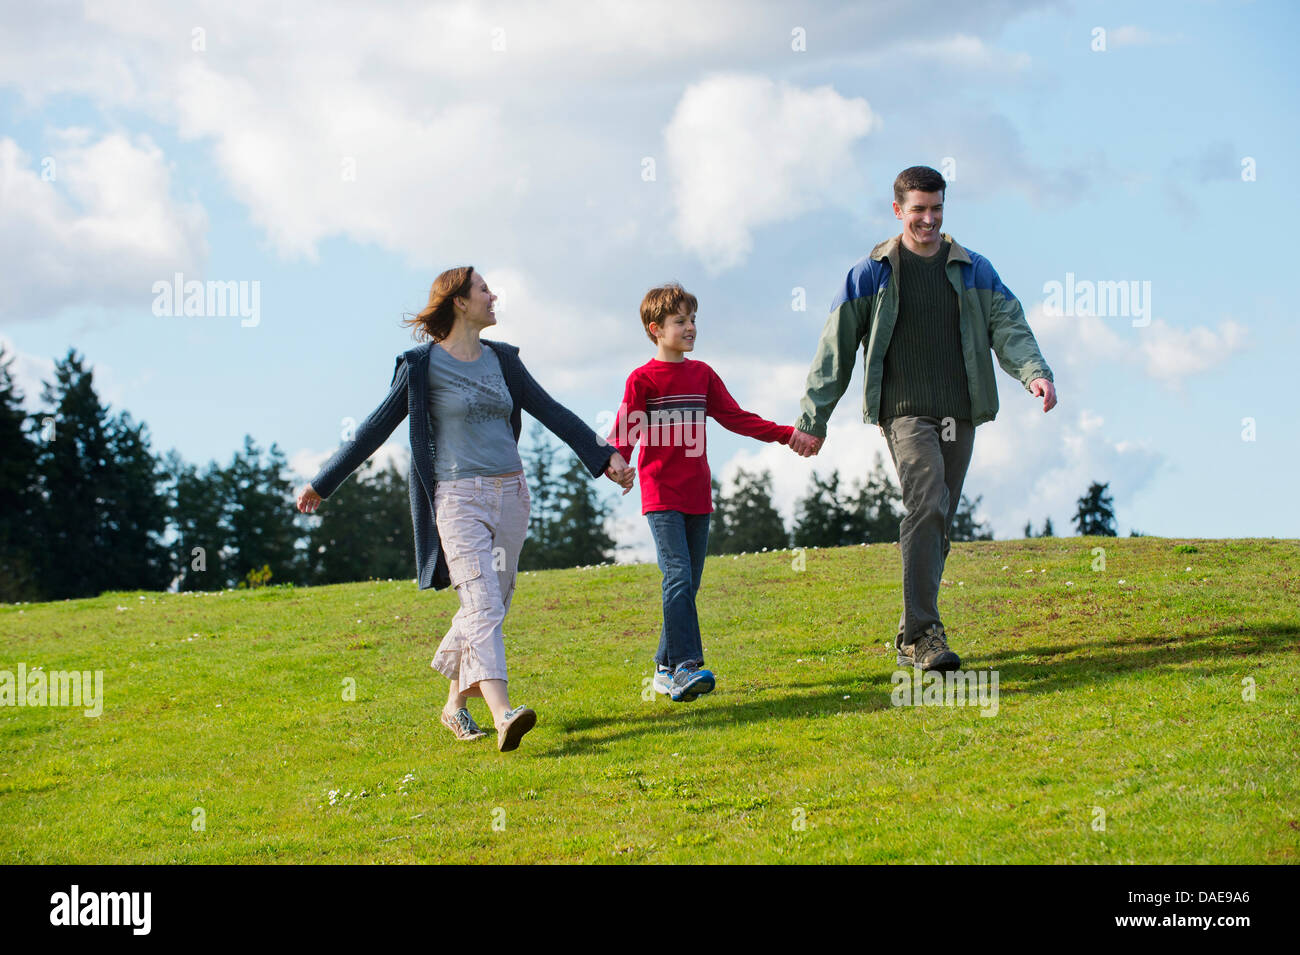 Parents and son walking hand in hand - Stock Image